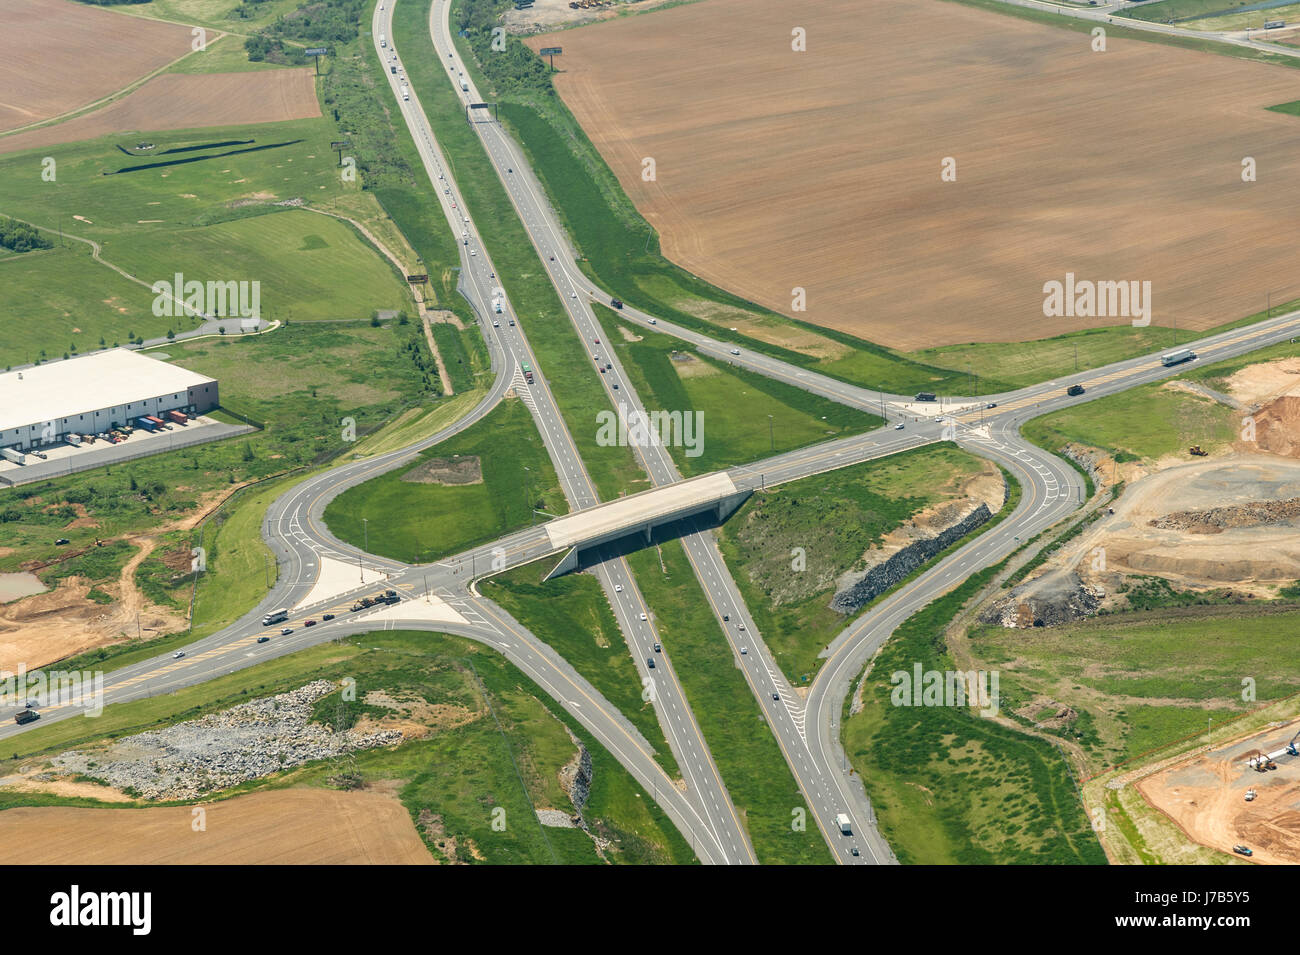 Aerial View Of Interstate Highway Interchange - Stock Image